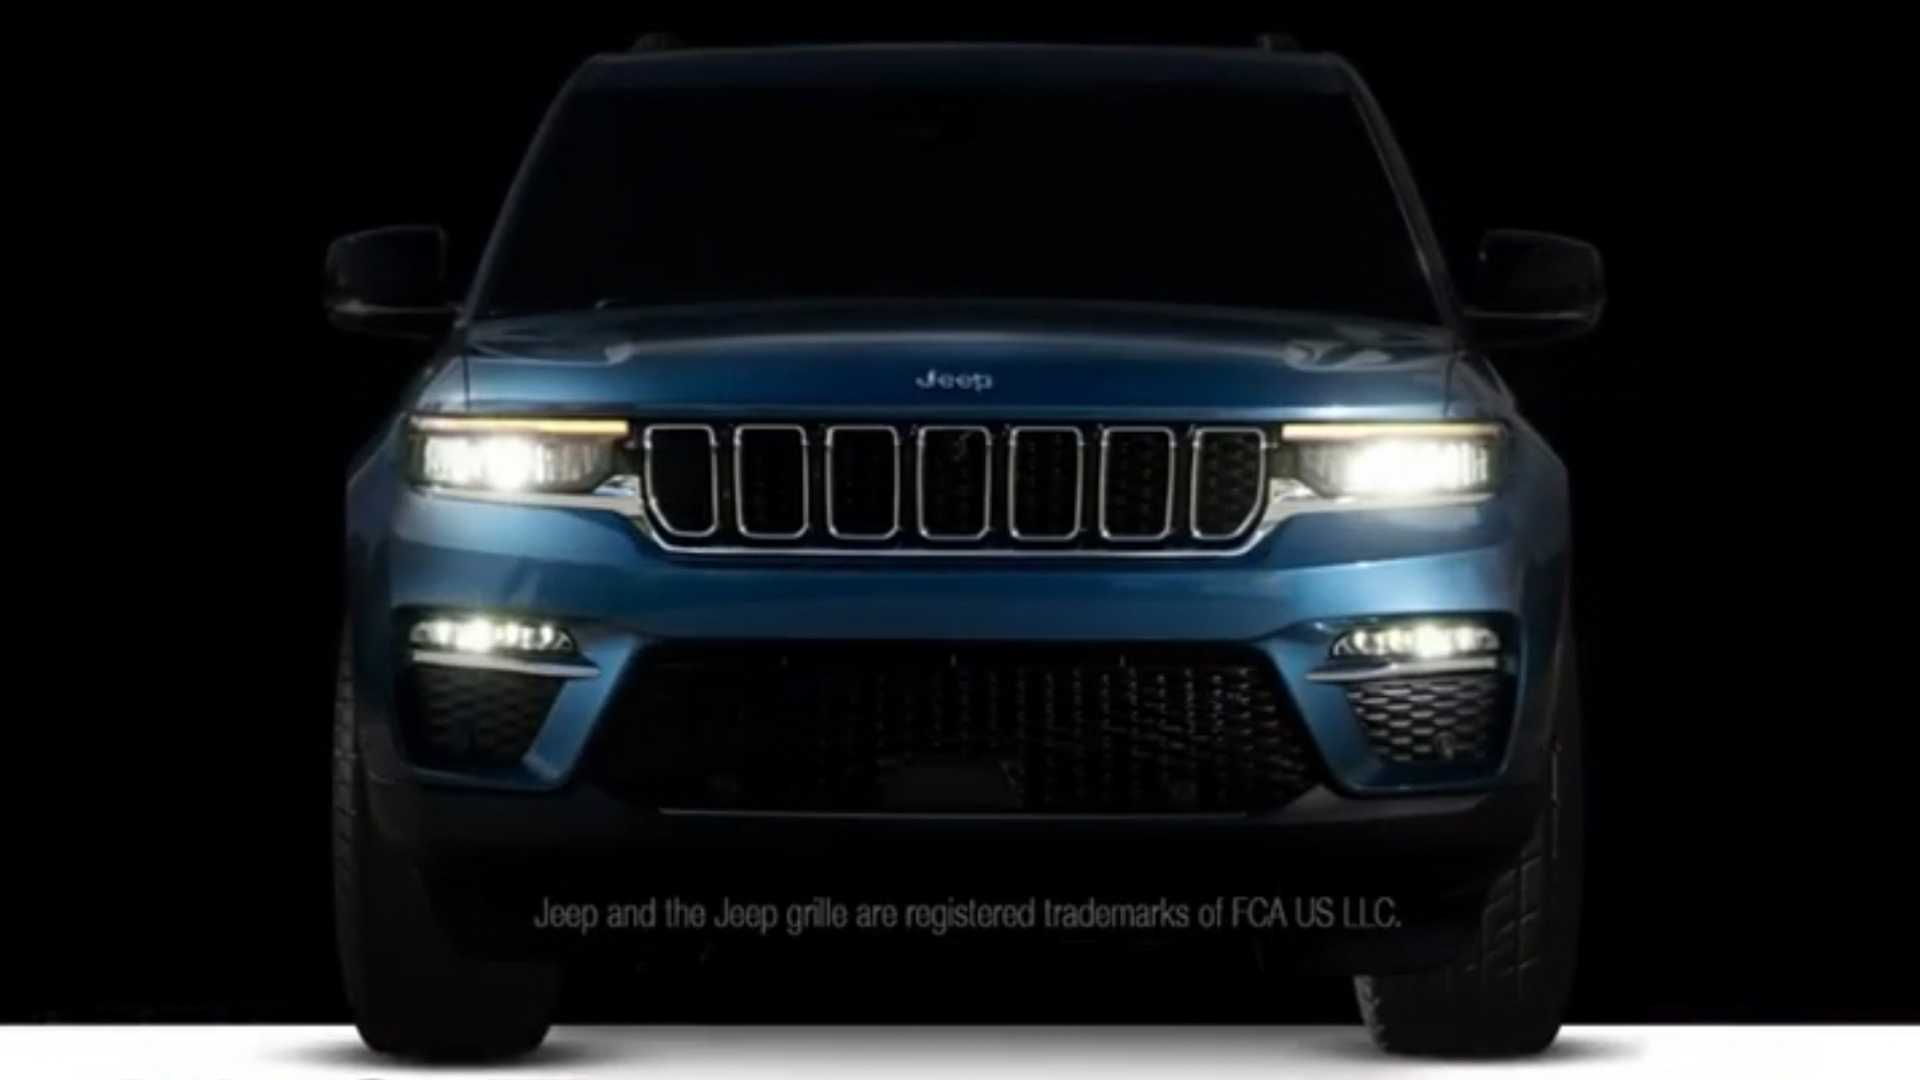 2022 Jeep Grand Cherokee Two-Row Model Debuts On September 29